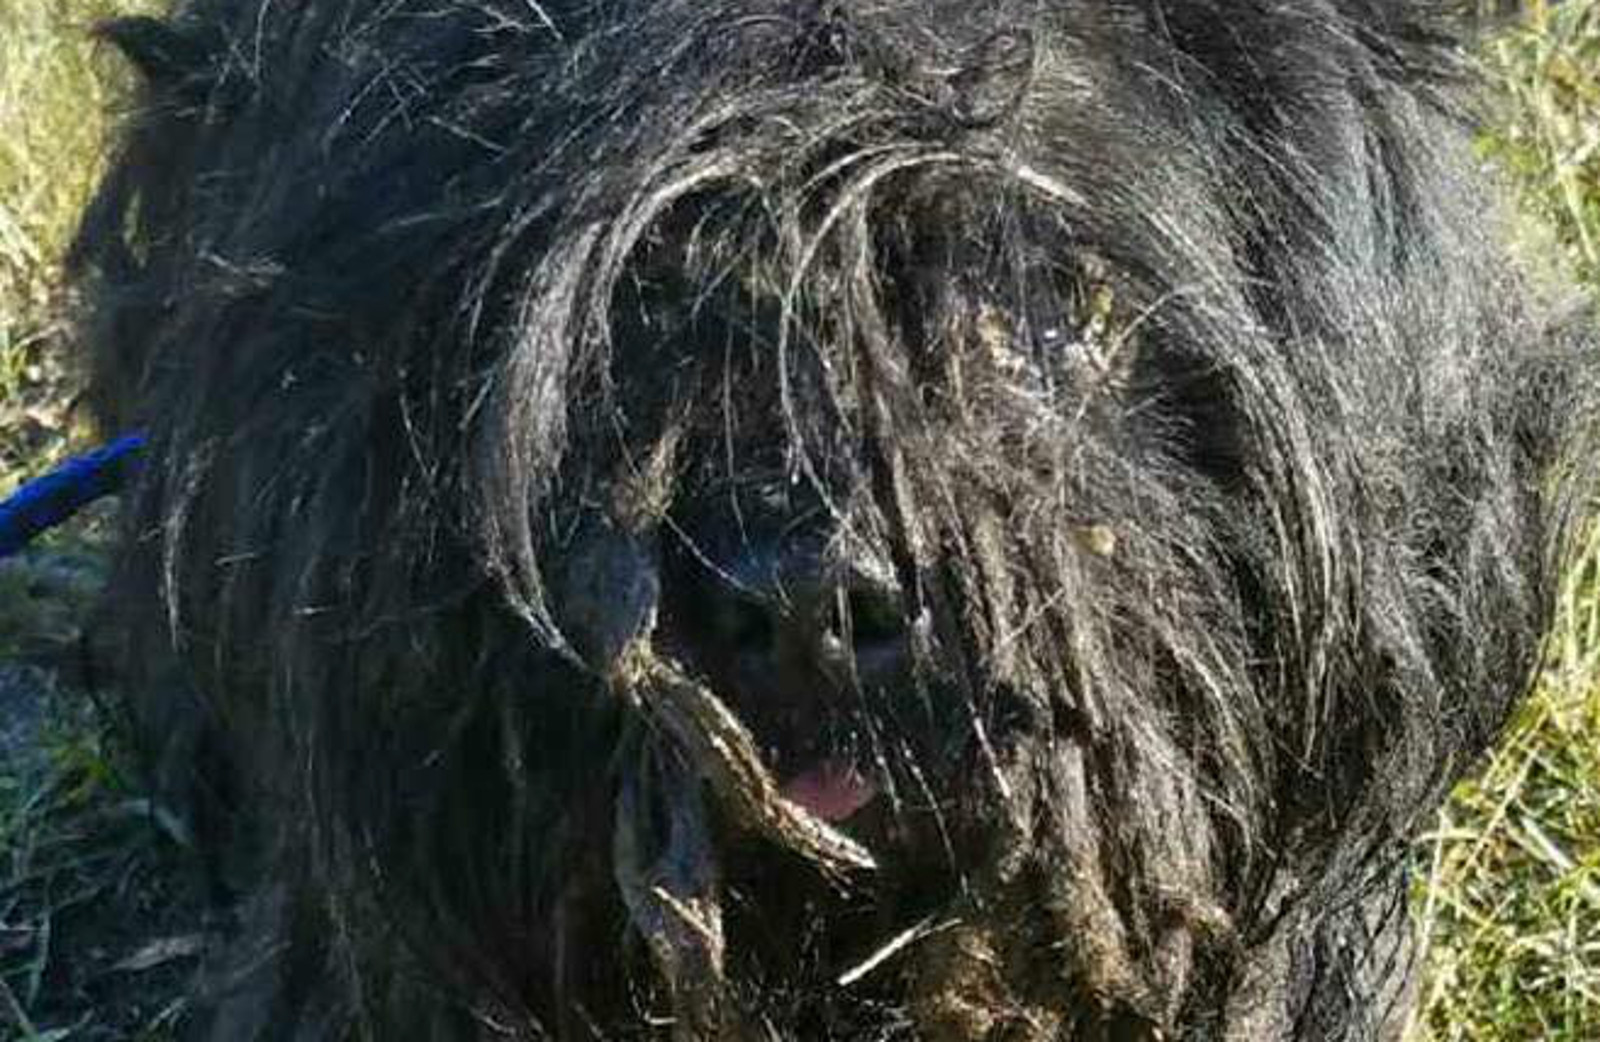 Severely Neglected Dog Looked More Like a Mop Than a Canine – Now He's Unrecognizable! (PHOTOS)